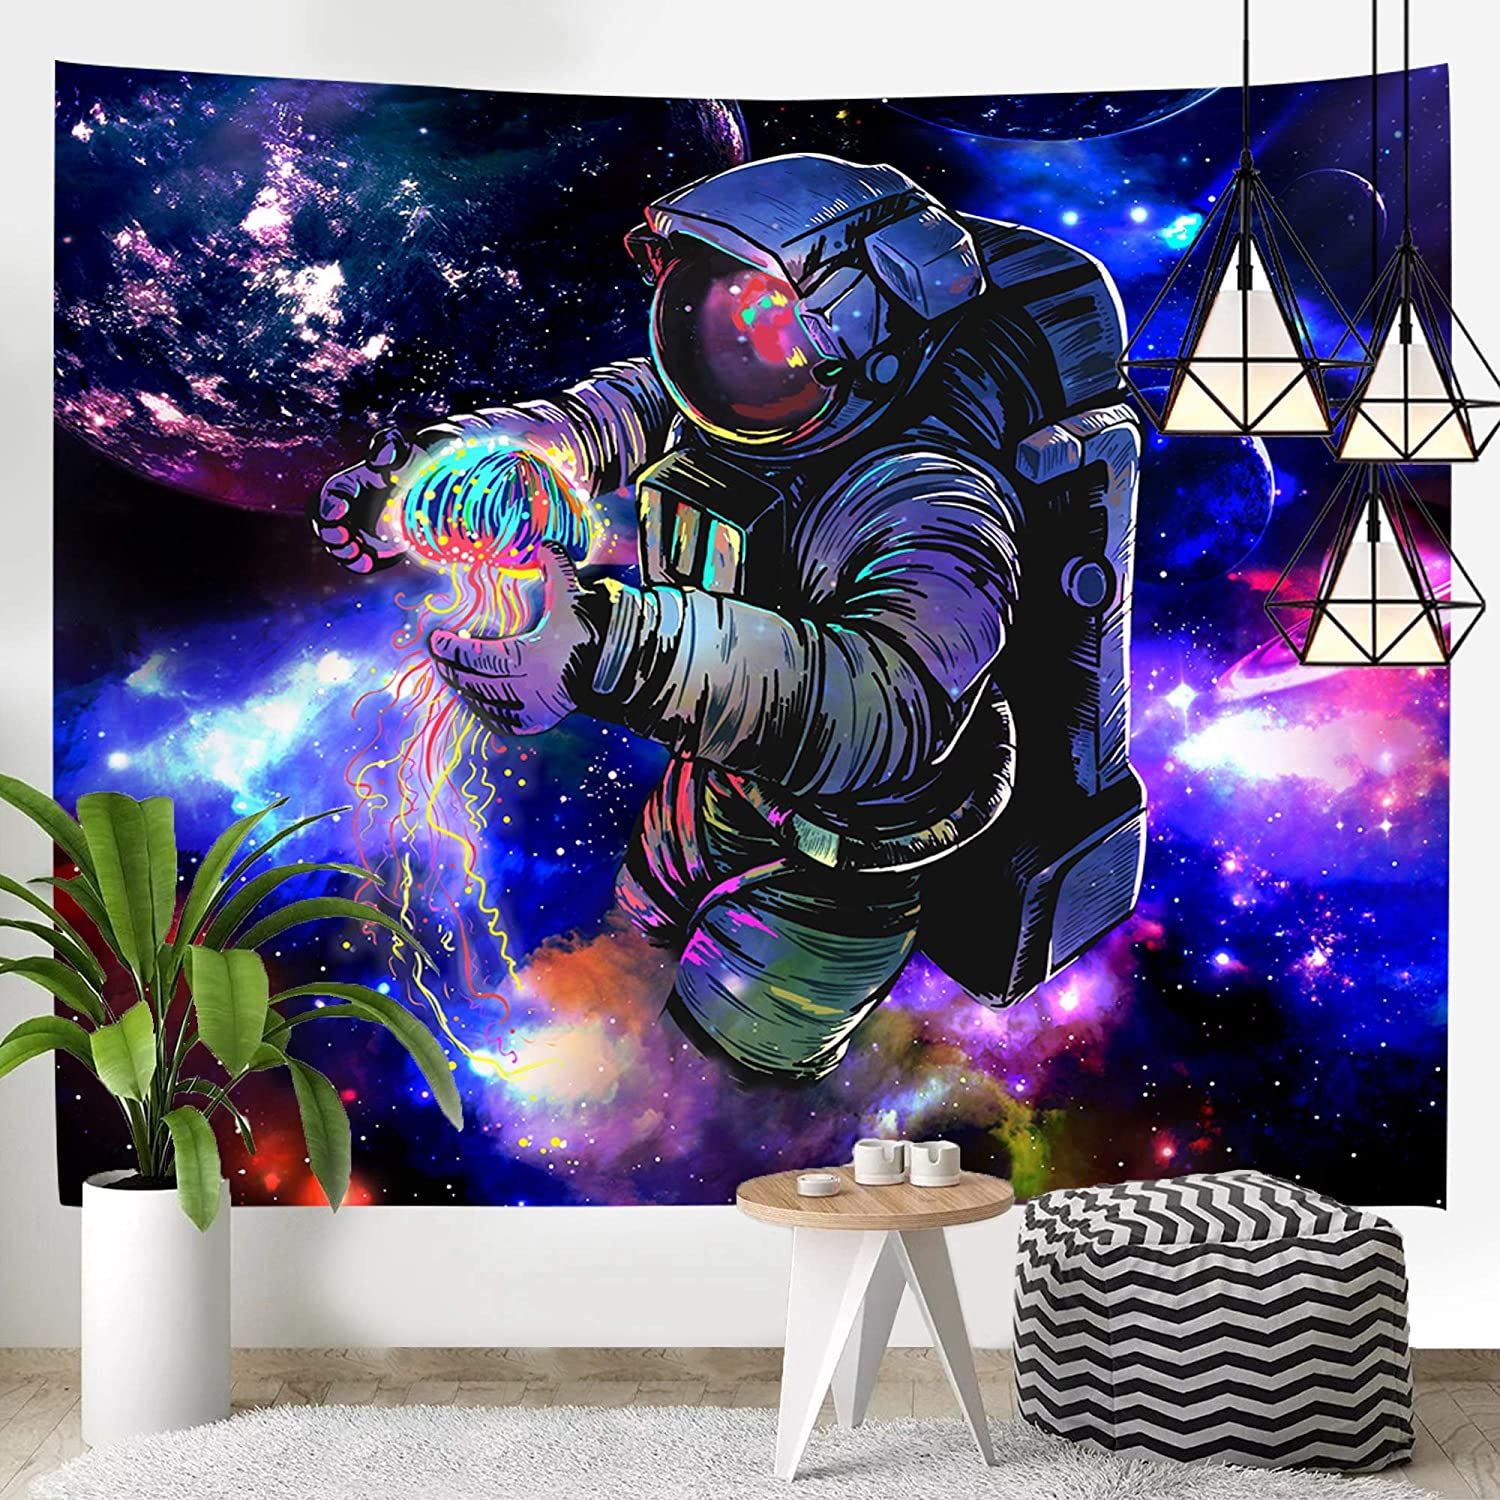 Hexagram Astronaut Tapestry, Trippy Outer Space Planets Tapestry Wall Hanging, Psychedelic Jellyfish Blacklight Poster, Fantasy Galaxy Wall Tapestry for Bedroom College Dorm Room Decor, 51x59 Inches